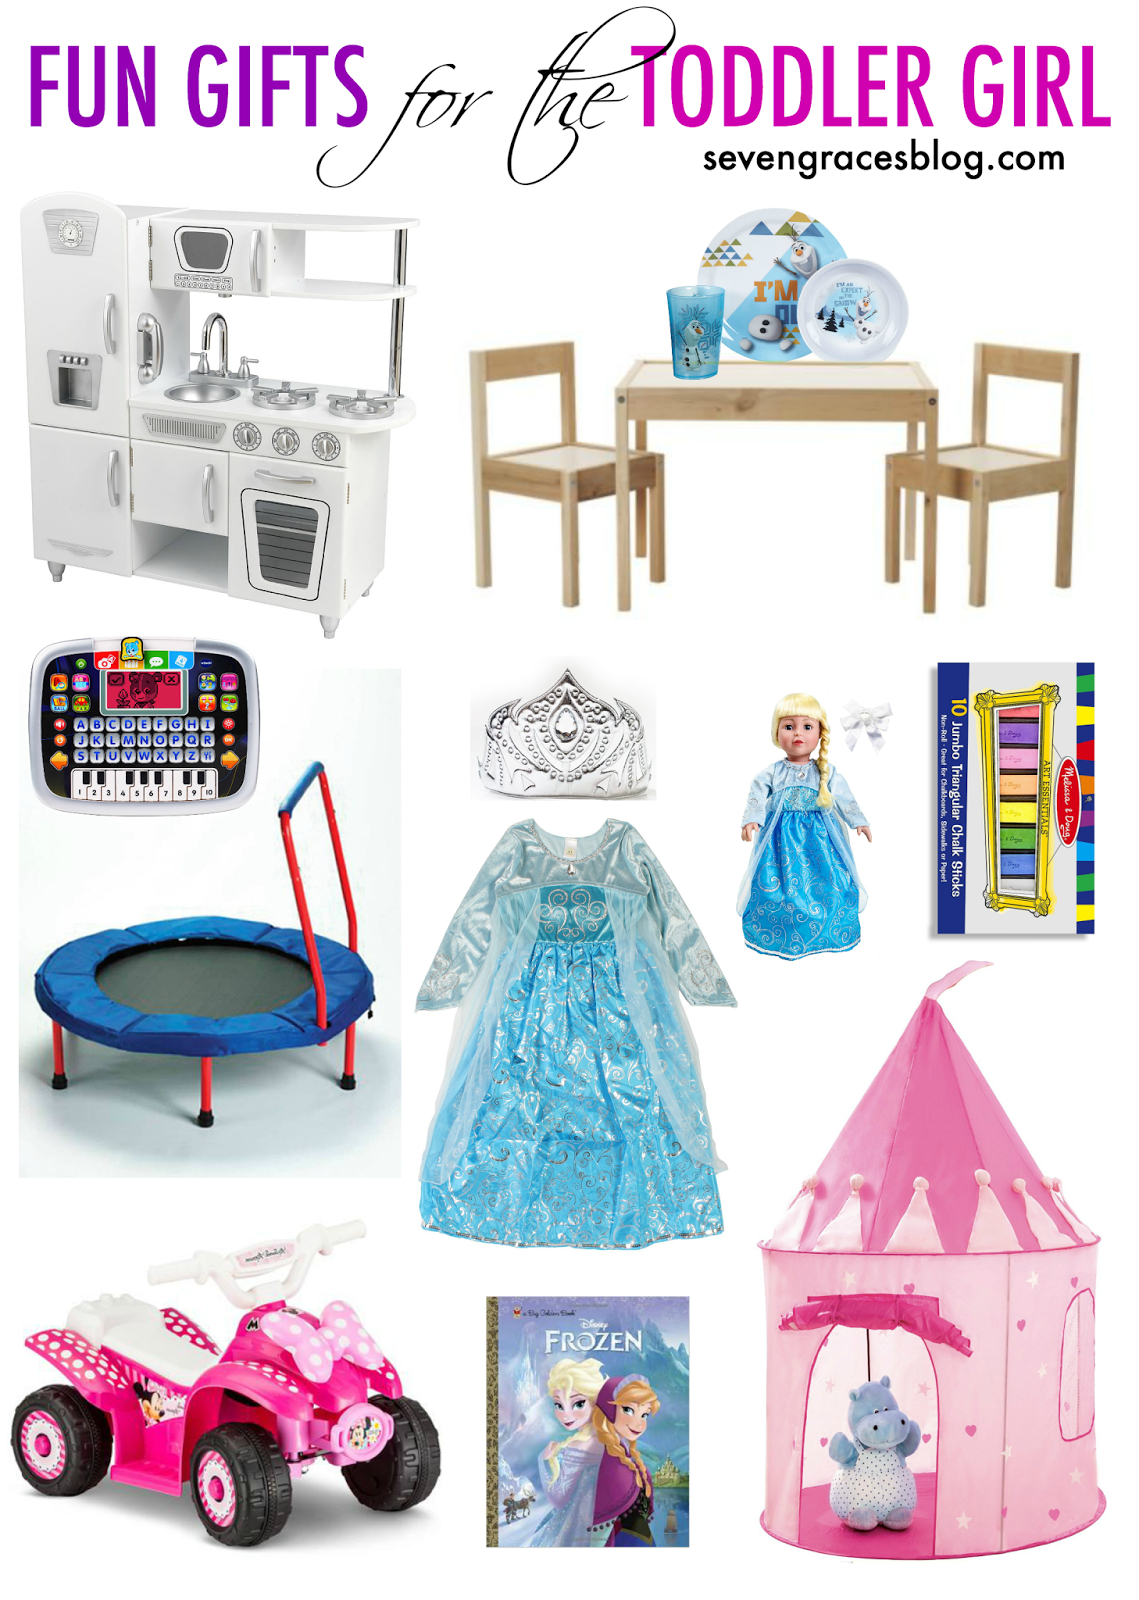 fun gifts for the toddler girl | seven graces blog posts | toddler